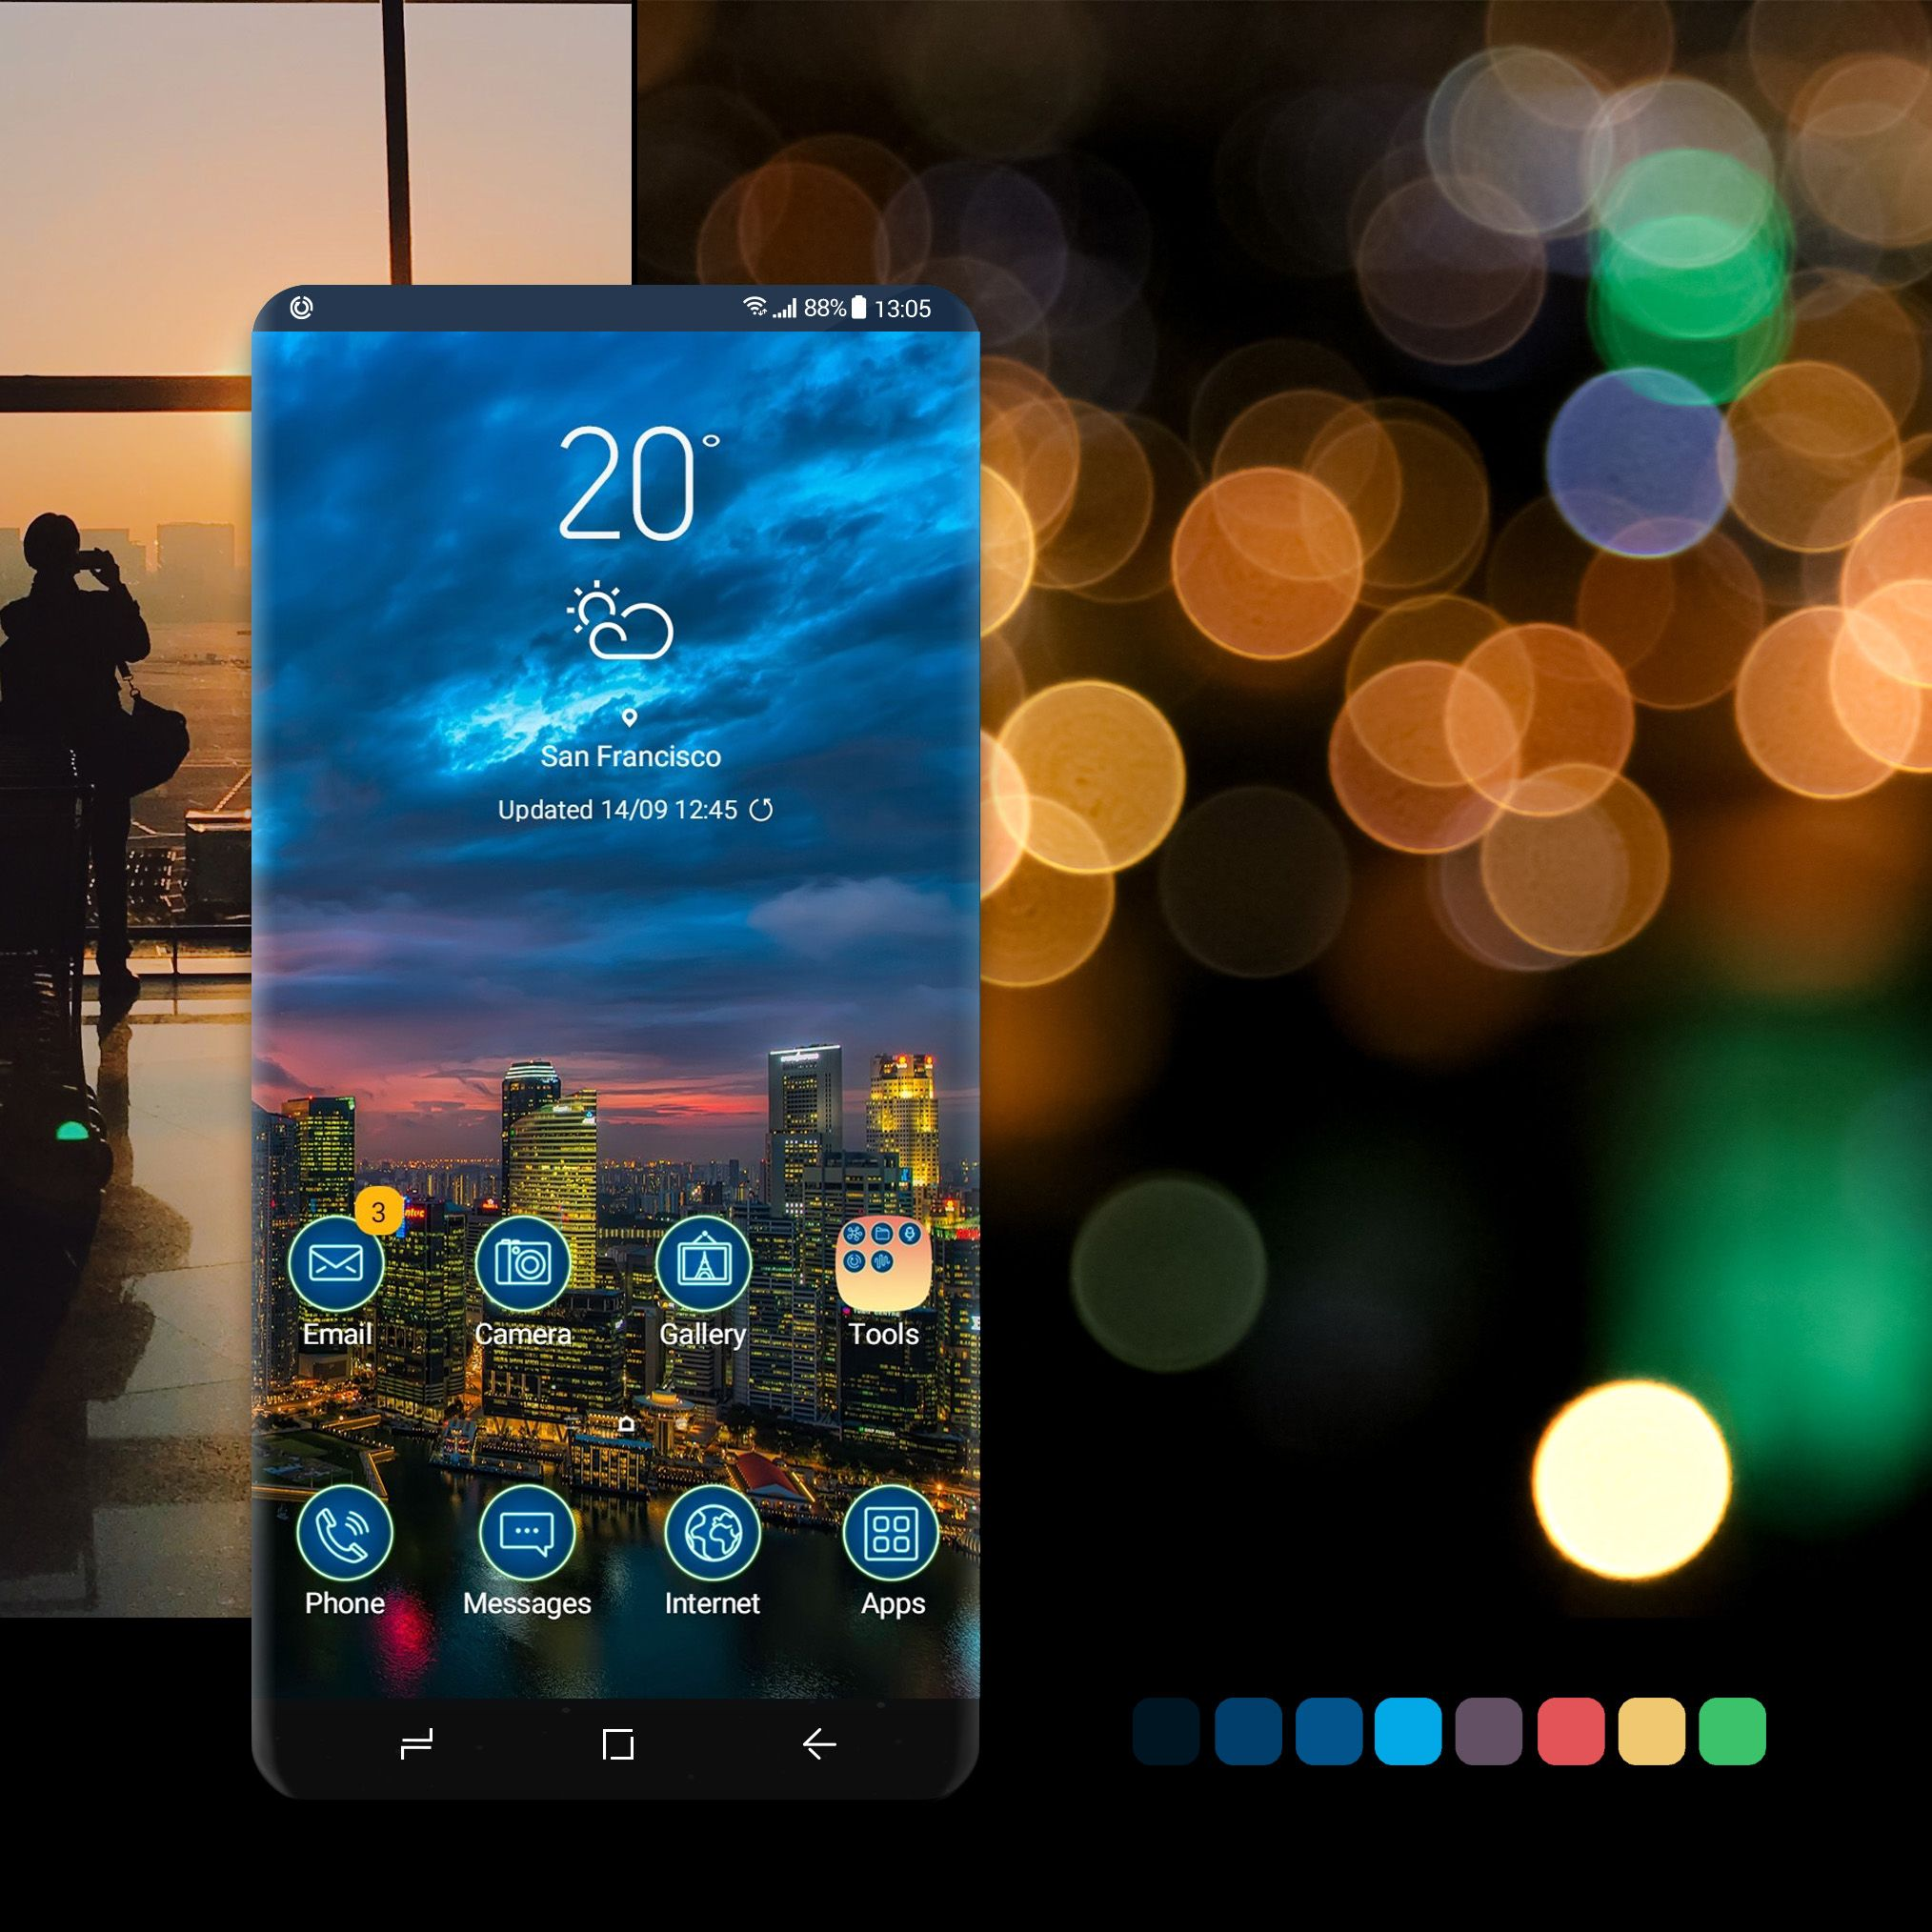 Night City free theme. wallpaper, android, phone,